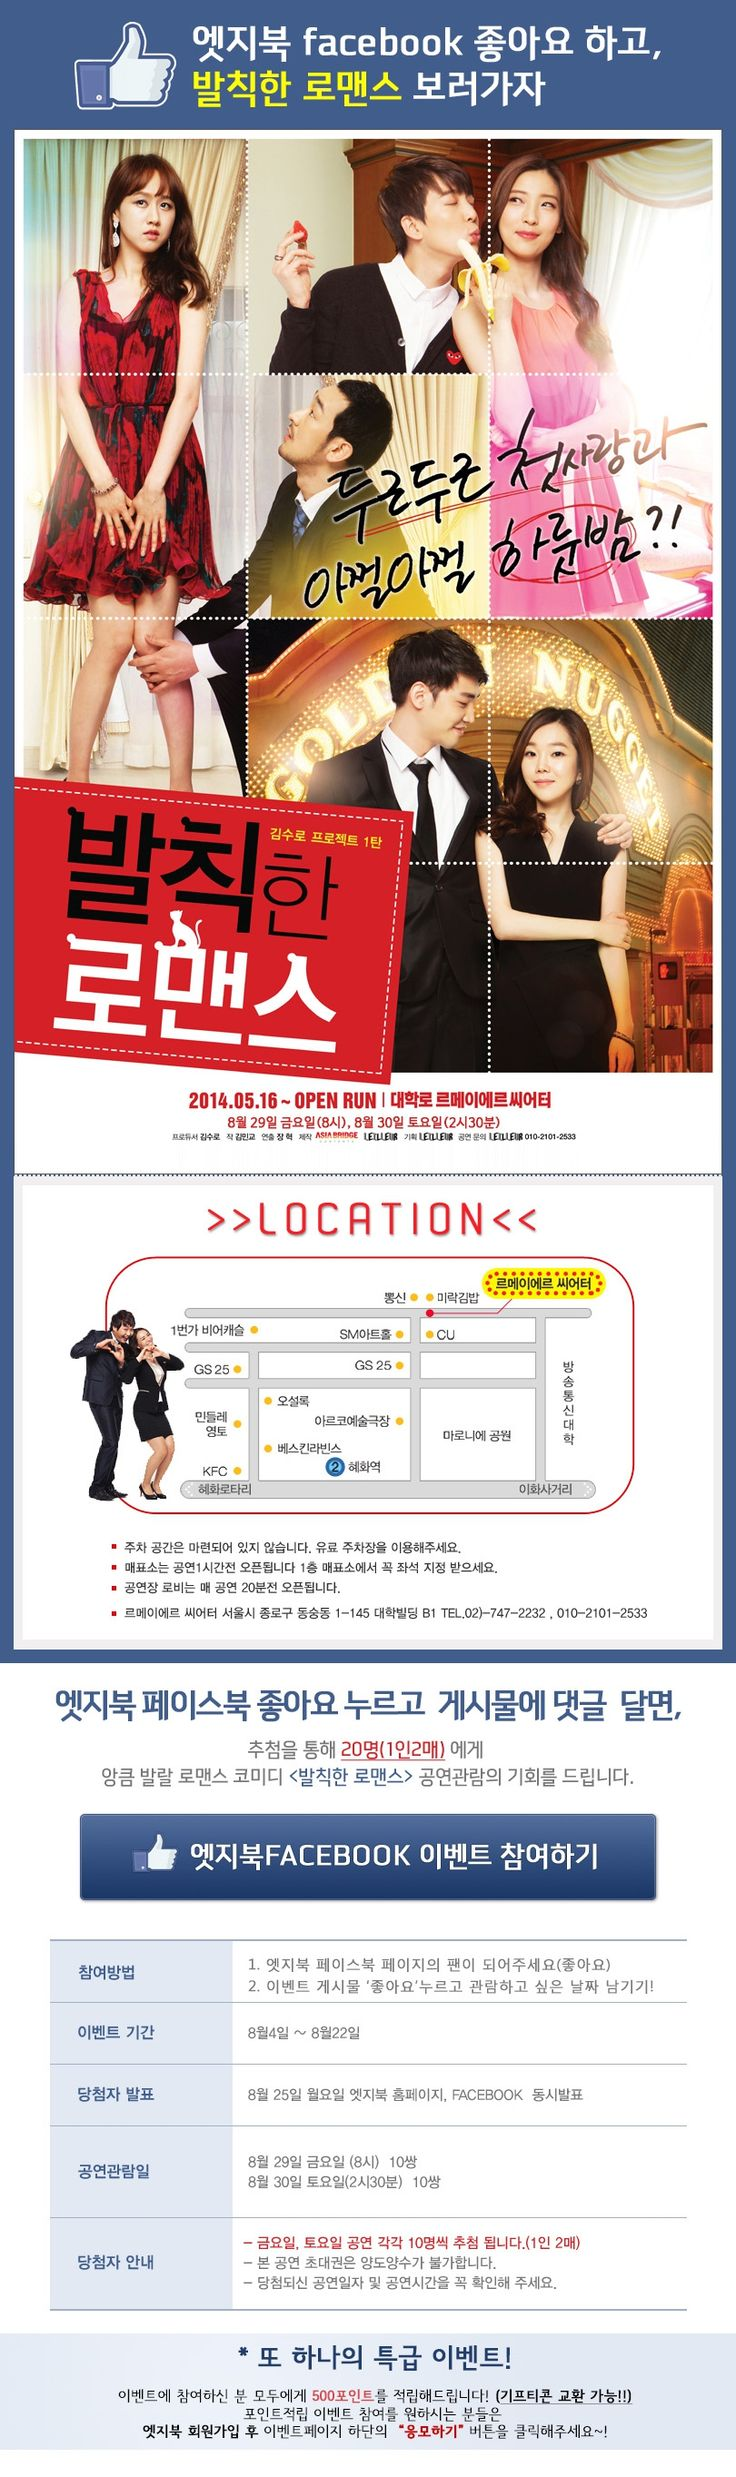 좋아요 누르고, 발칙한로맨스 연극보러가자   https://www.facebook.com/edgebookcom  http://www.edgebook.com/event_detail.html?id=60&type=now